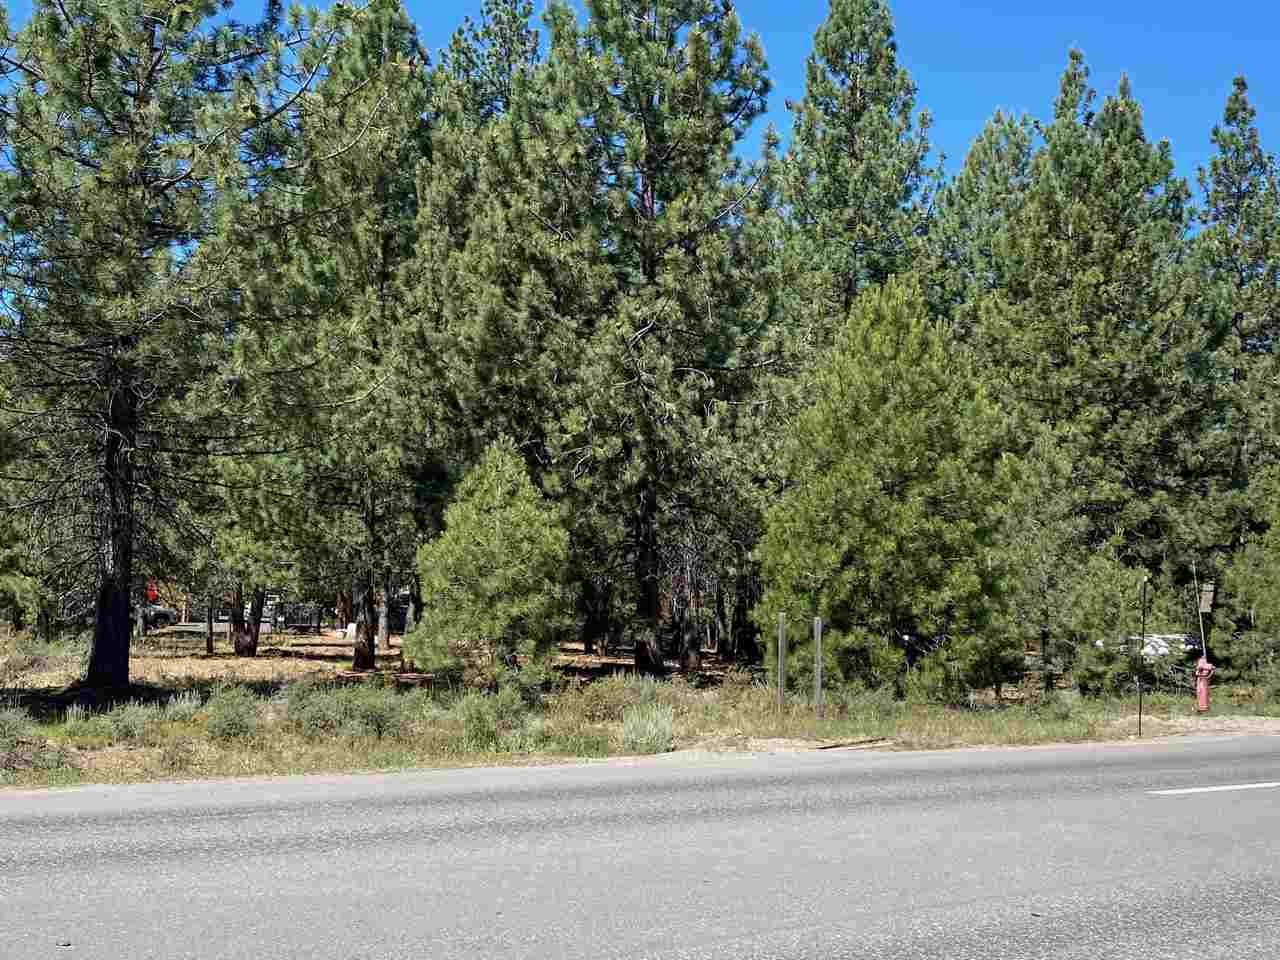 Image for 10035 Martis Valley Road, Truckee, CA 96161